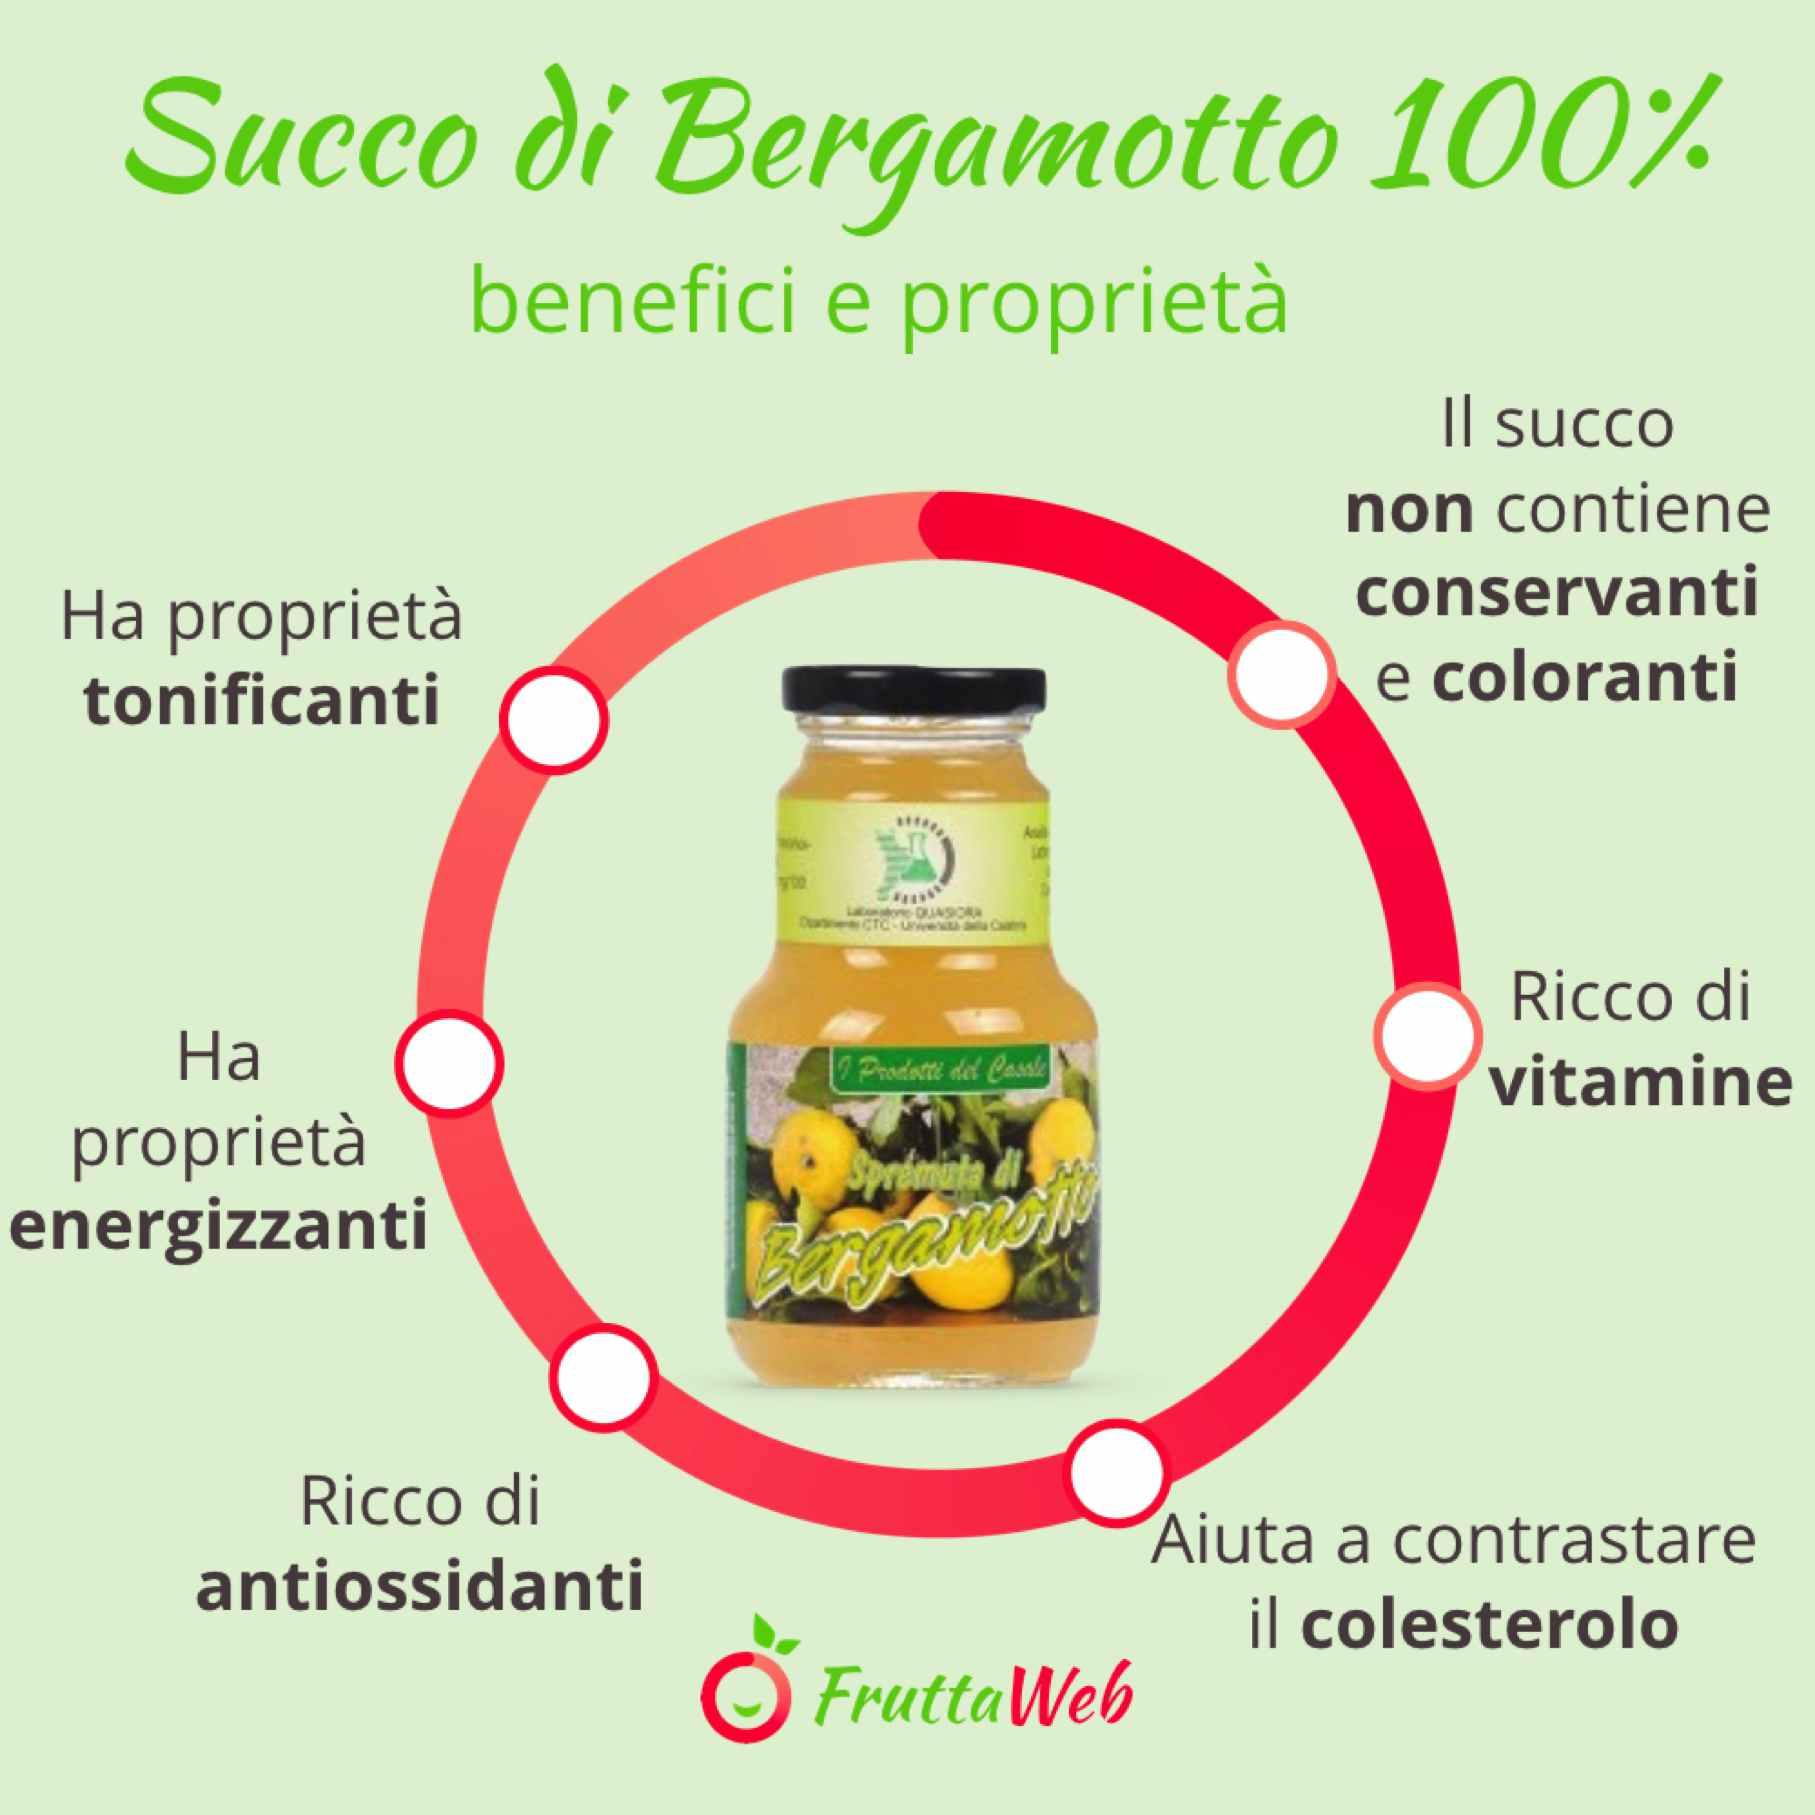 Succo di Bergamotto proprieta benefici